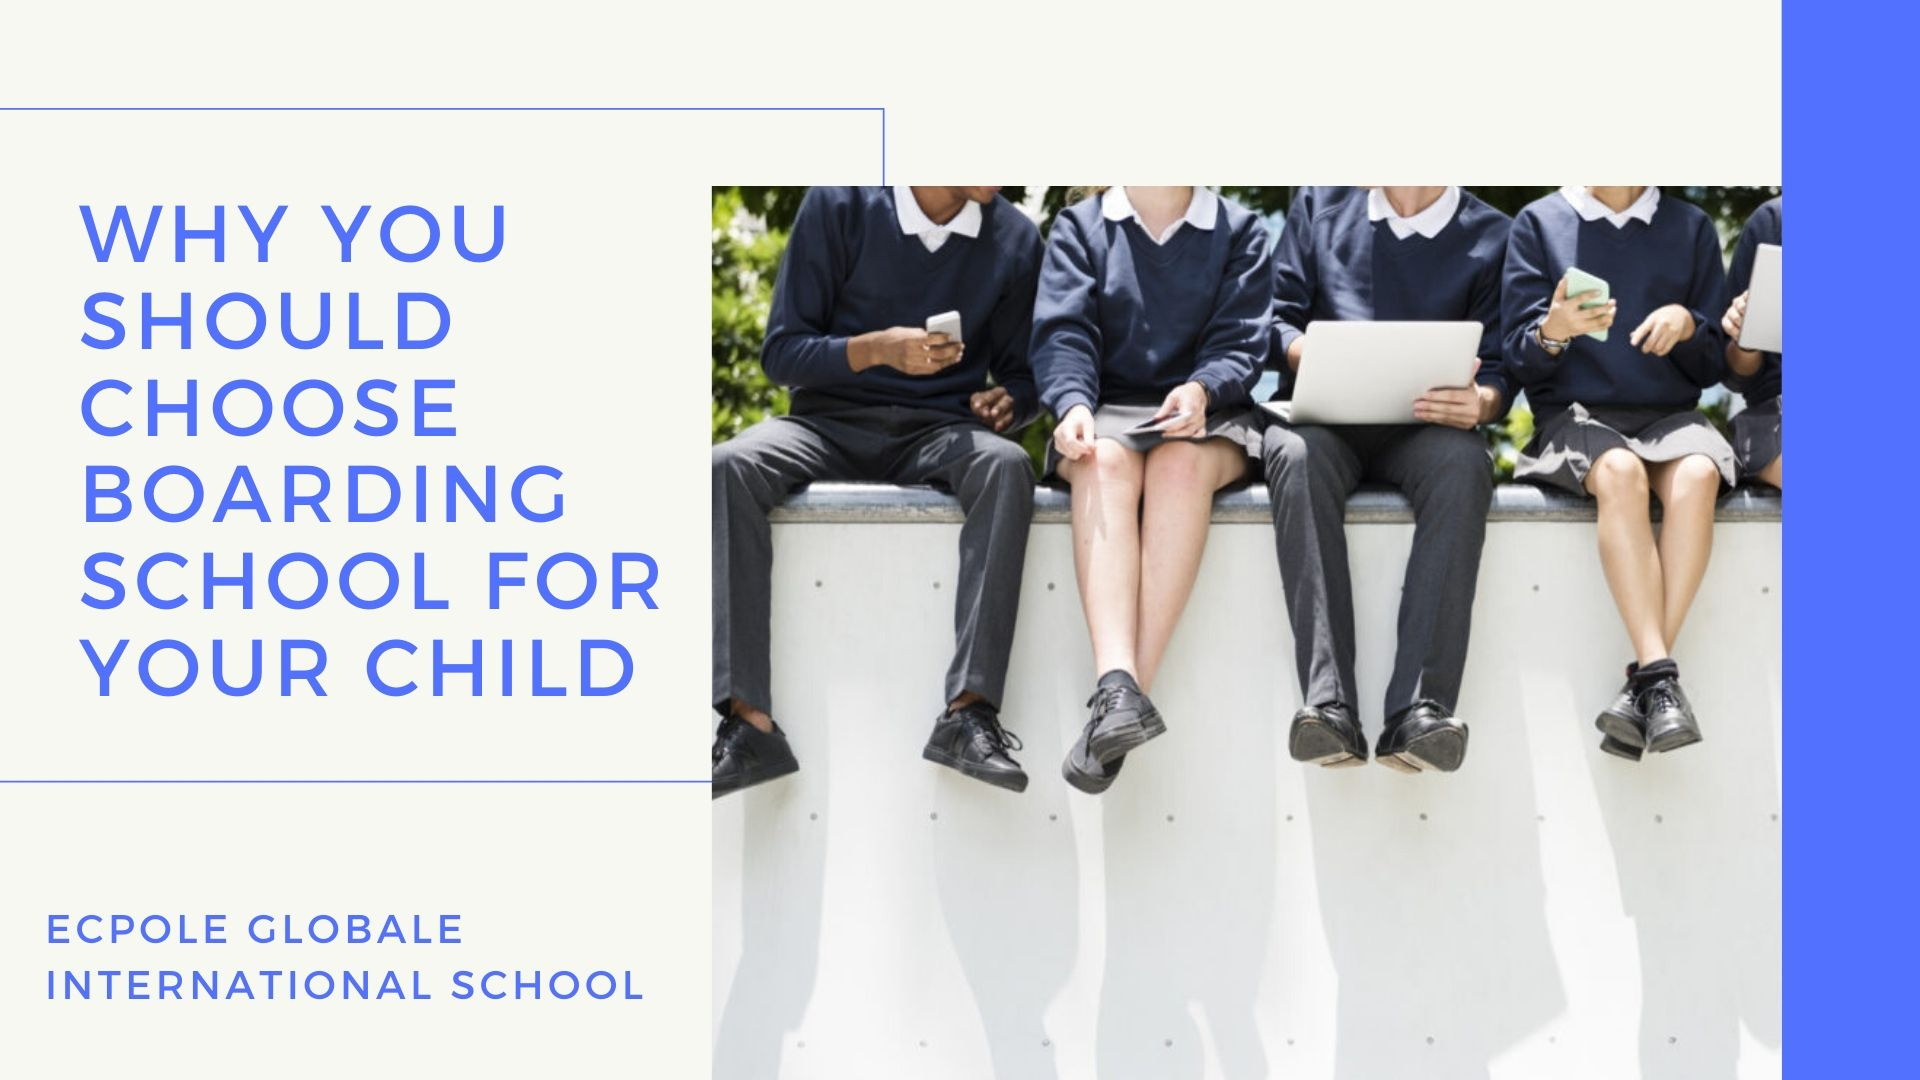 Why you should choose boarding school for your child